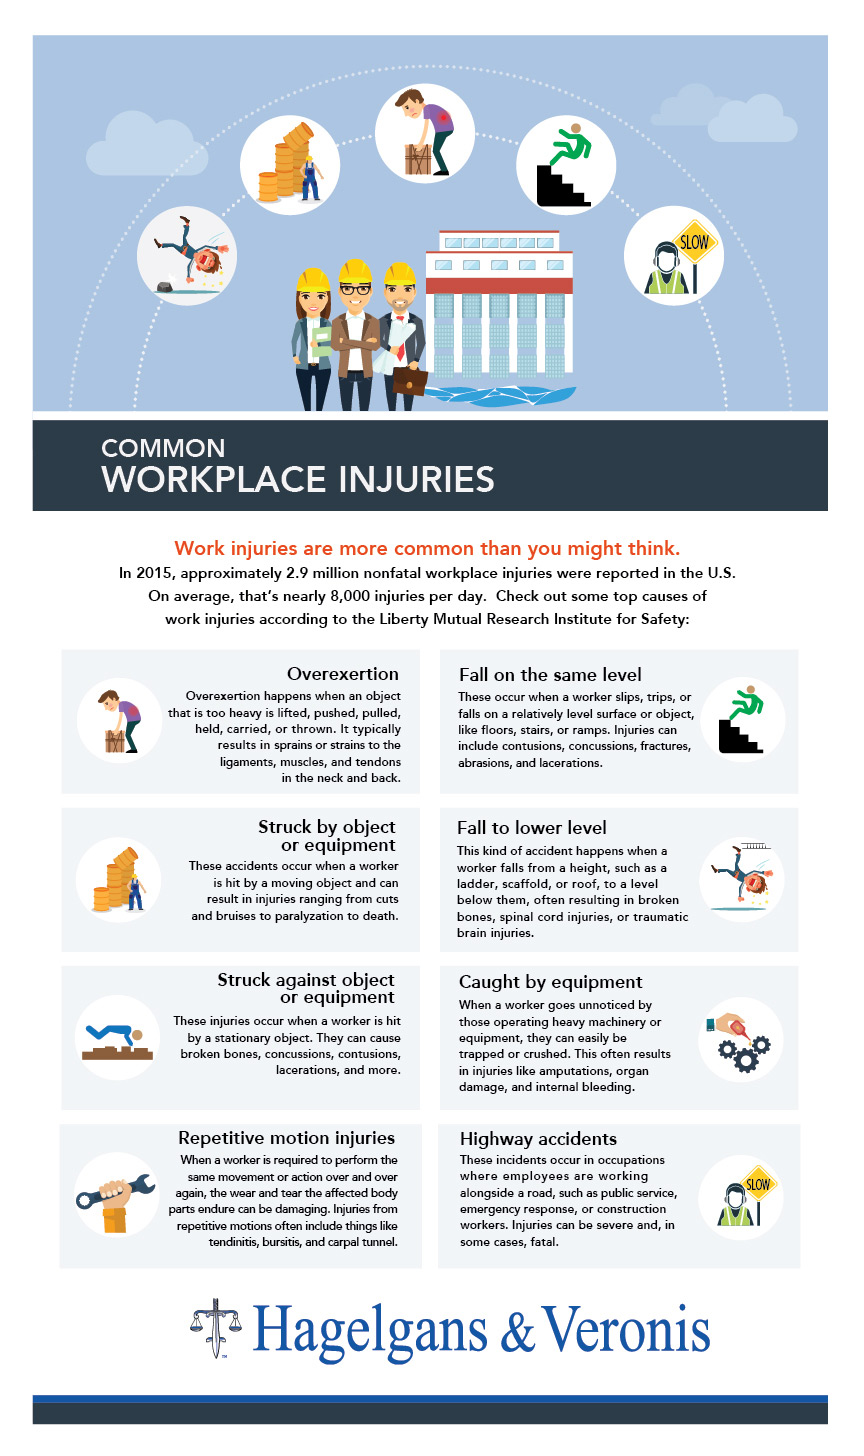 Common workplace injuries infographic